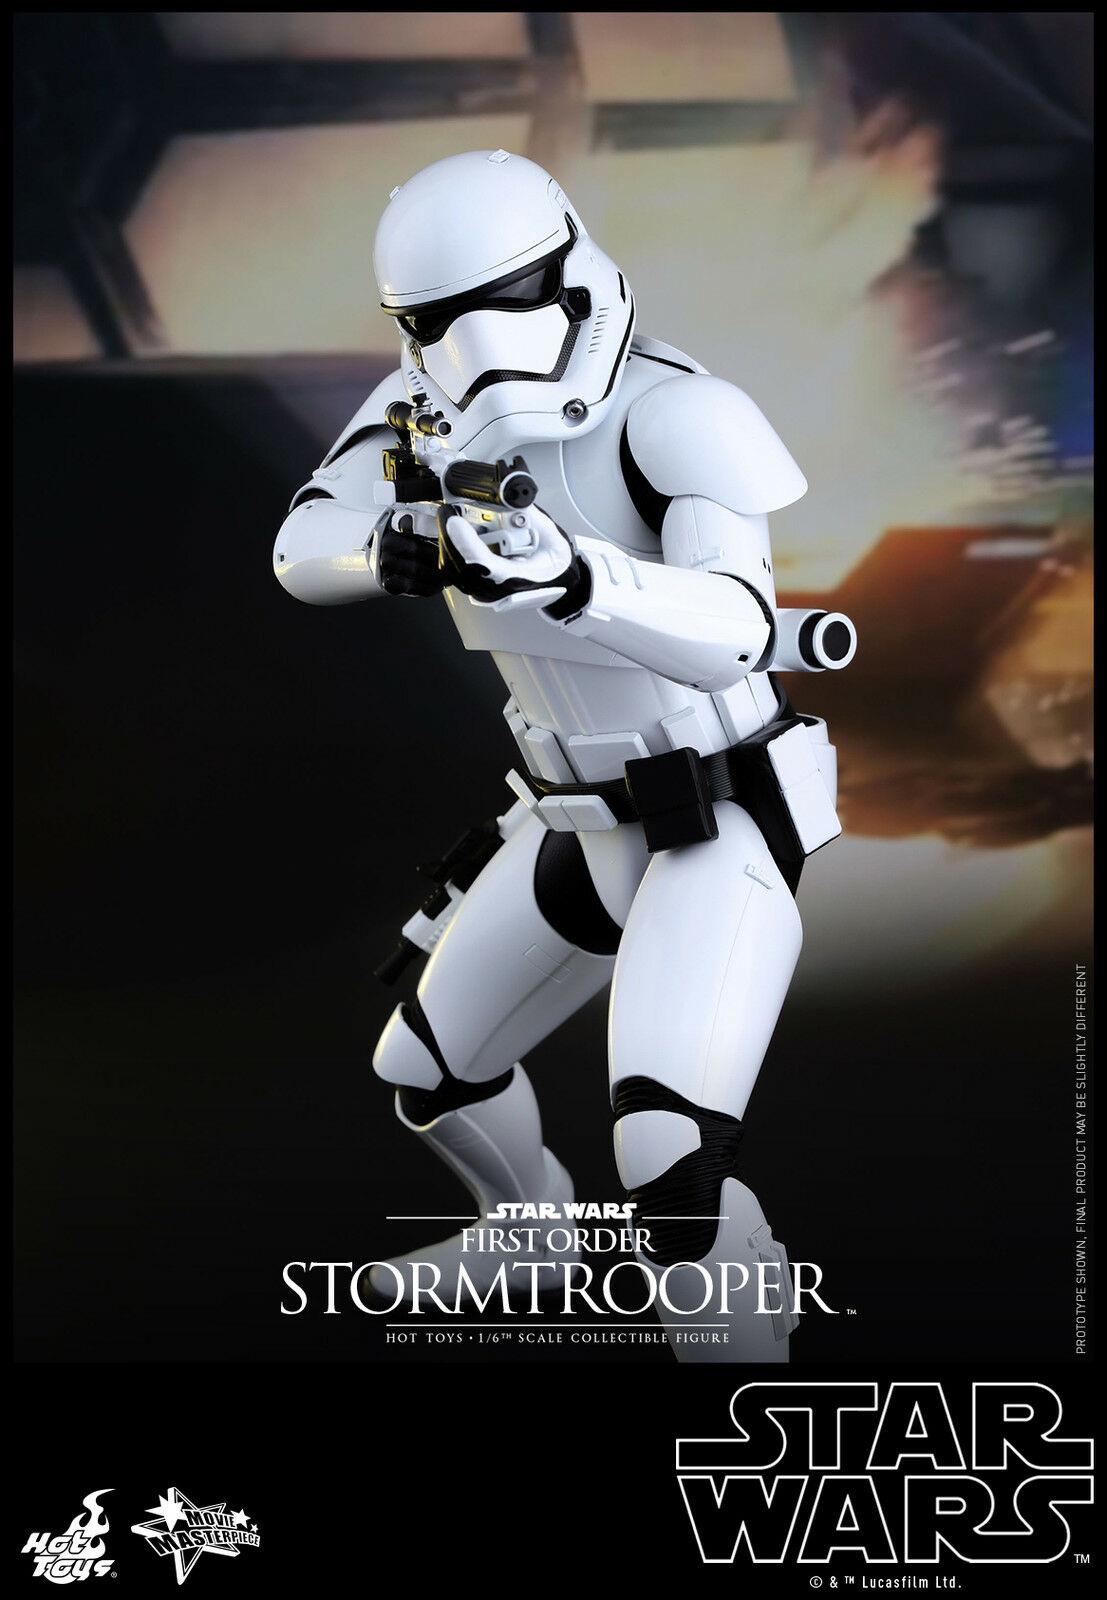 STAR WARS THE FORCE AWAKENS: FIRST ORDER STORMTROOPER 1:6 SCALE FIGURE HOT TOYS